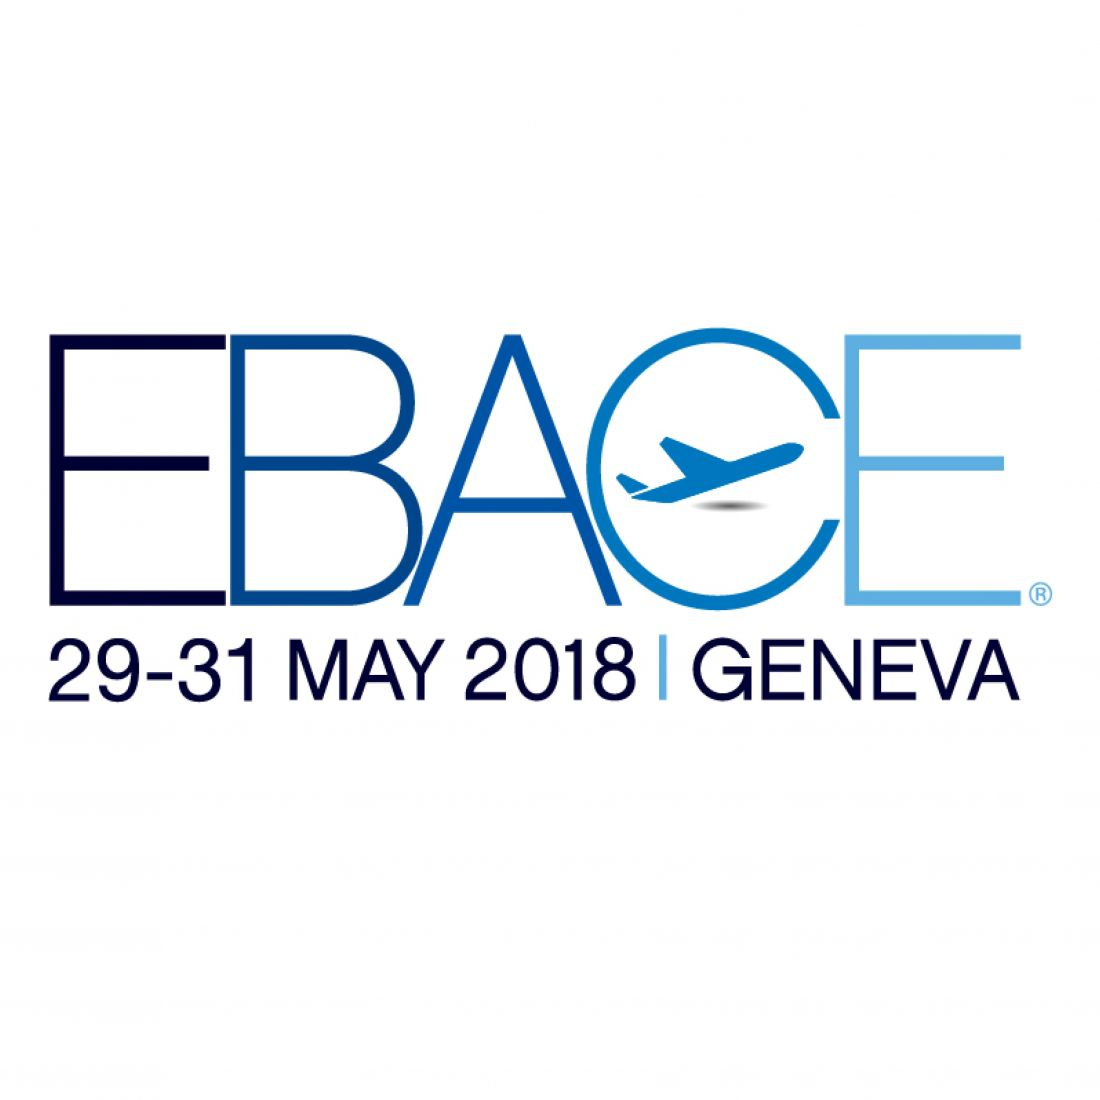 Meet the team at EBACE